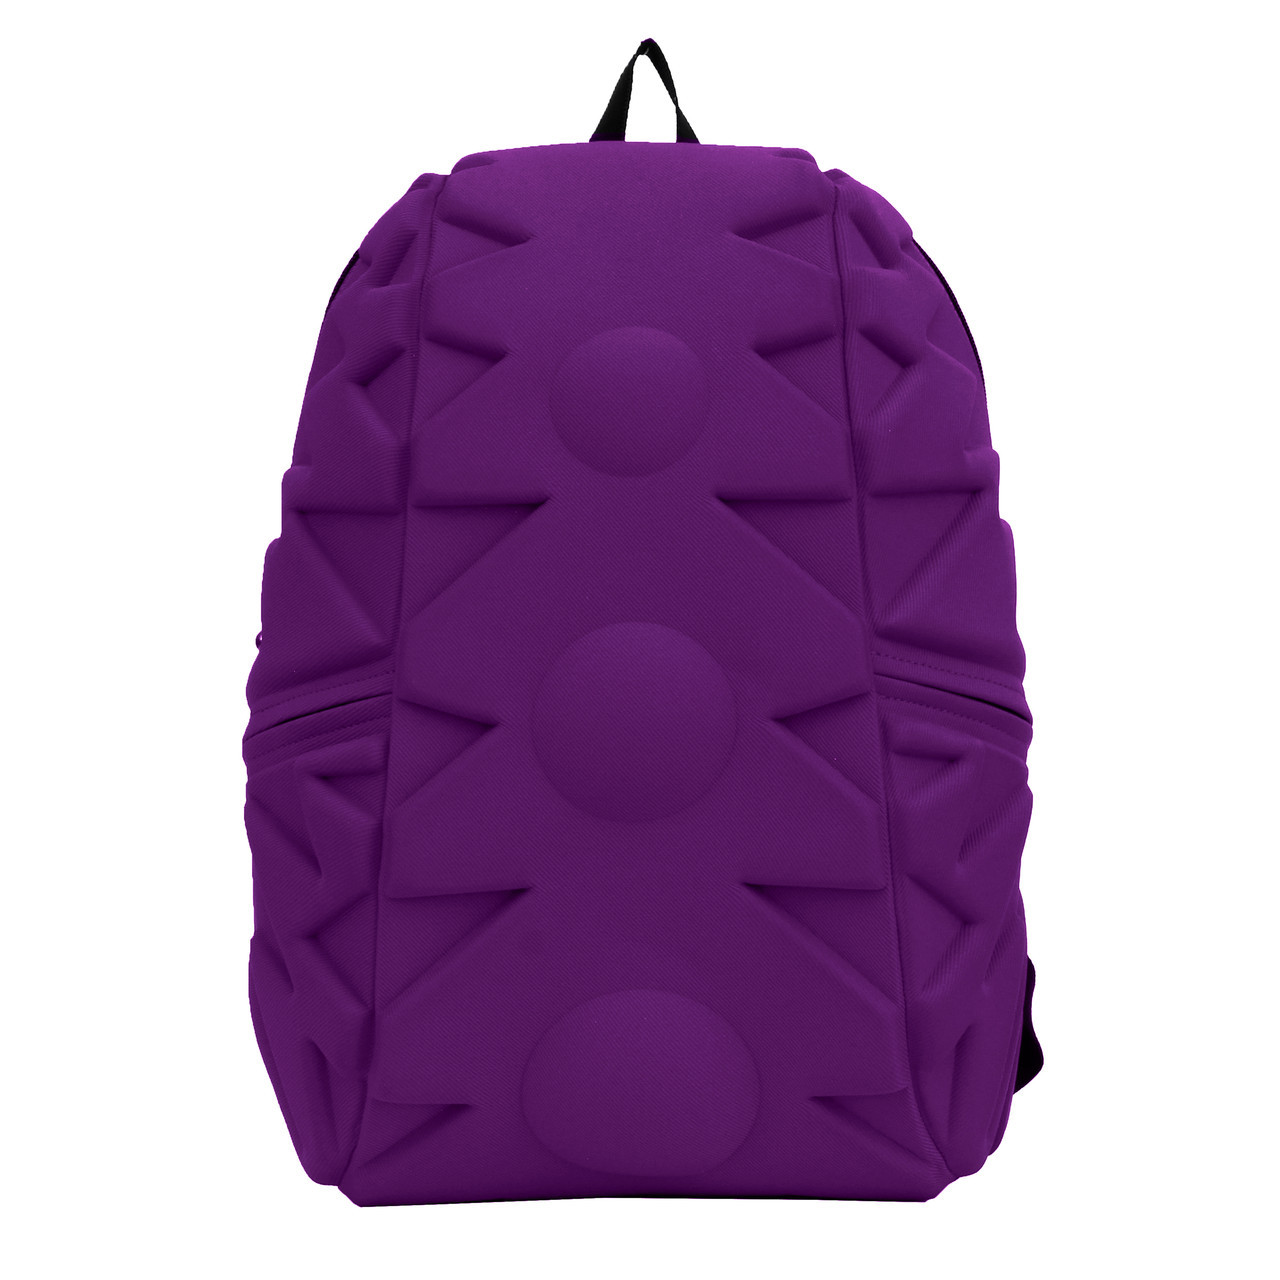 Рюкзак Madpax Exo Full Purple (KAA24484642)